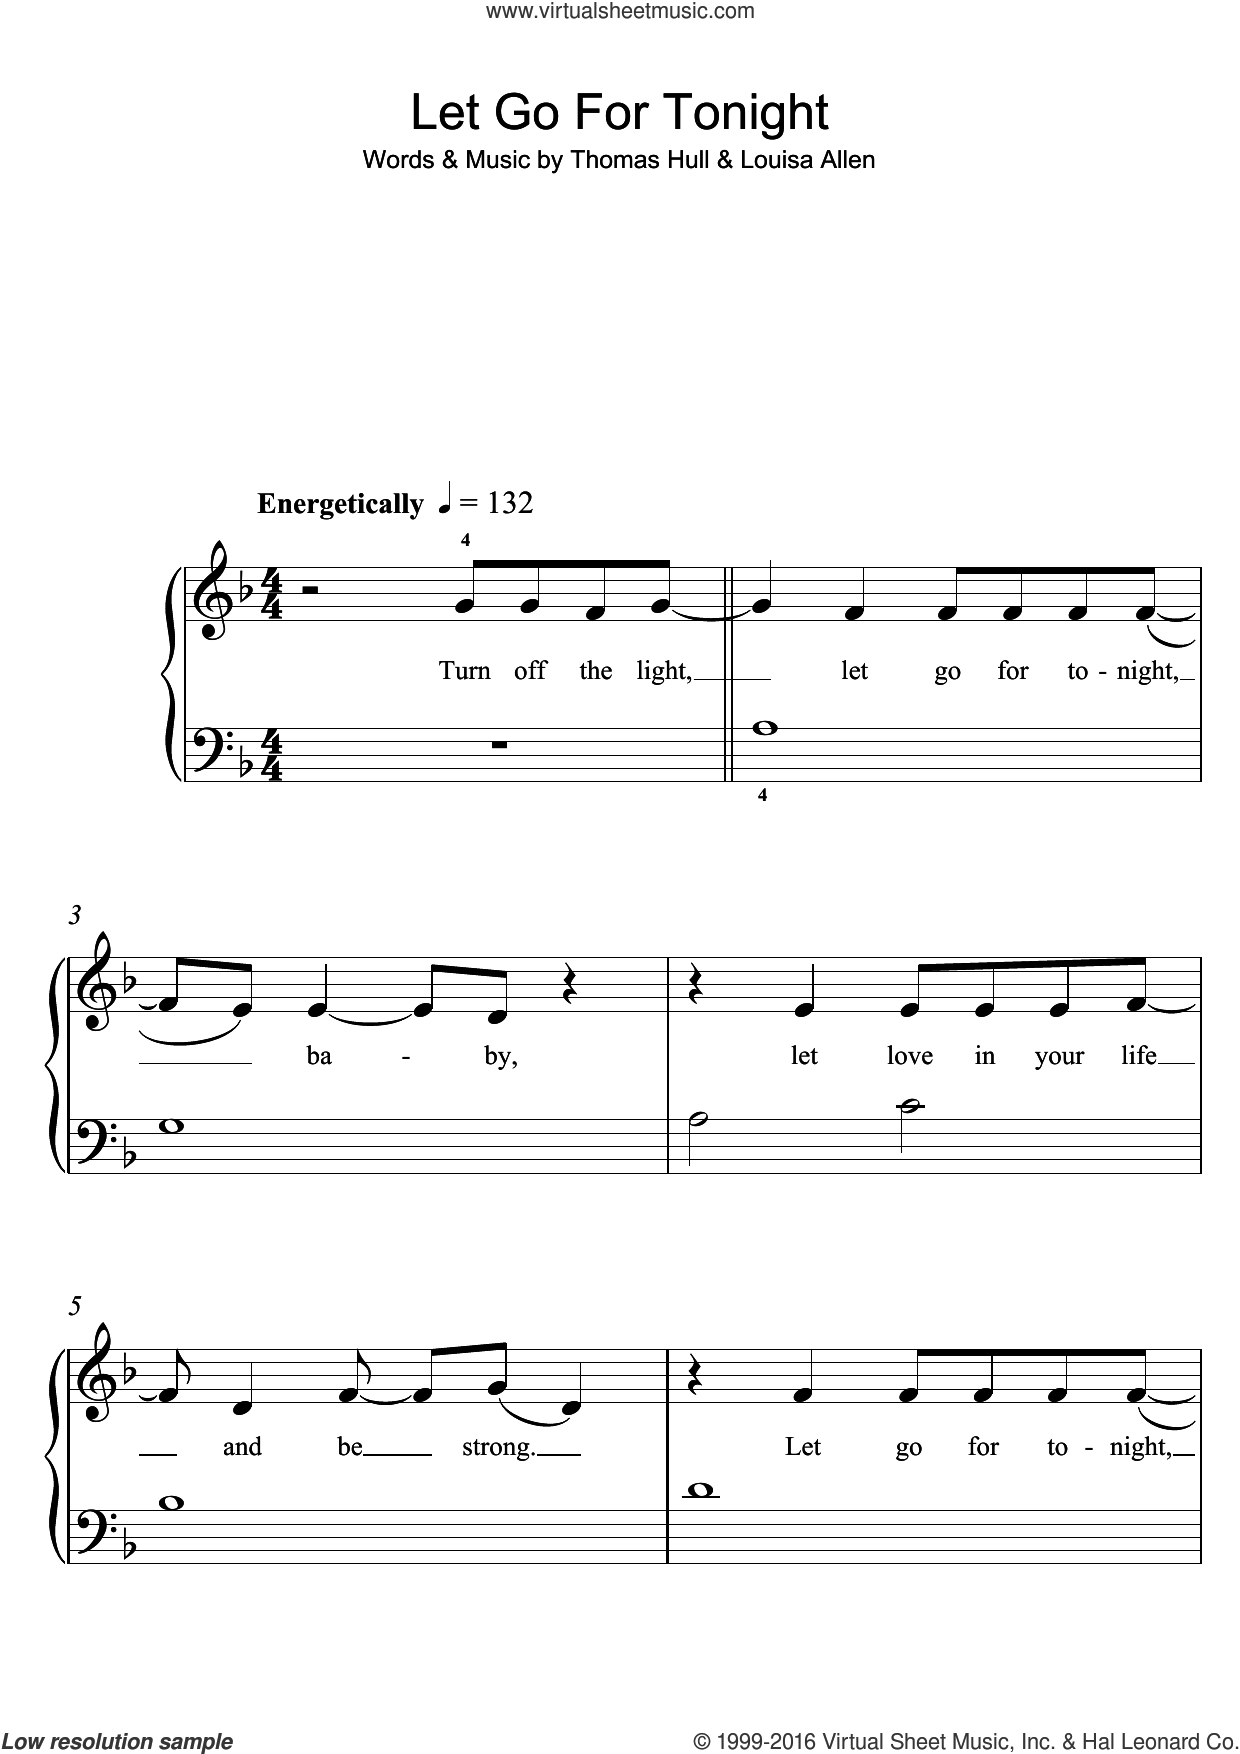 Let Go For Tonight sheet music for piano solo by Foxes, Louisa Allen and Tom Hull, easy skill level